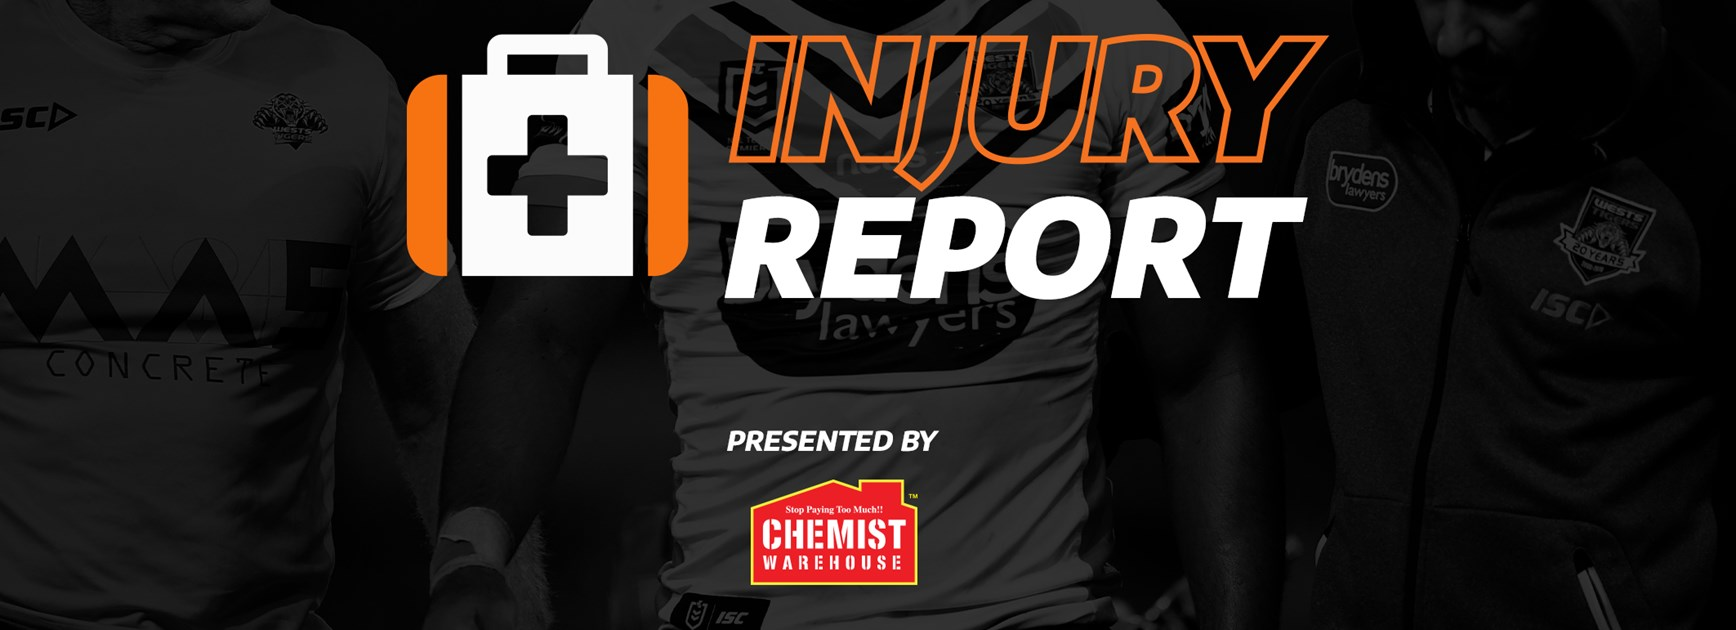 Chemist Warehouse Injury Report: April